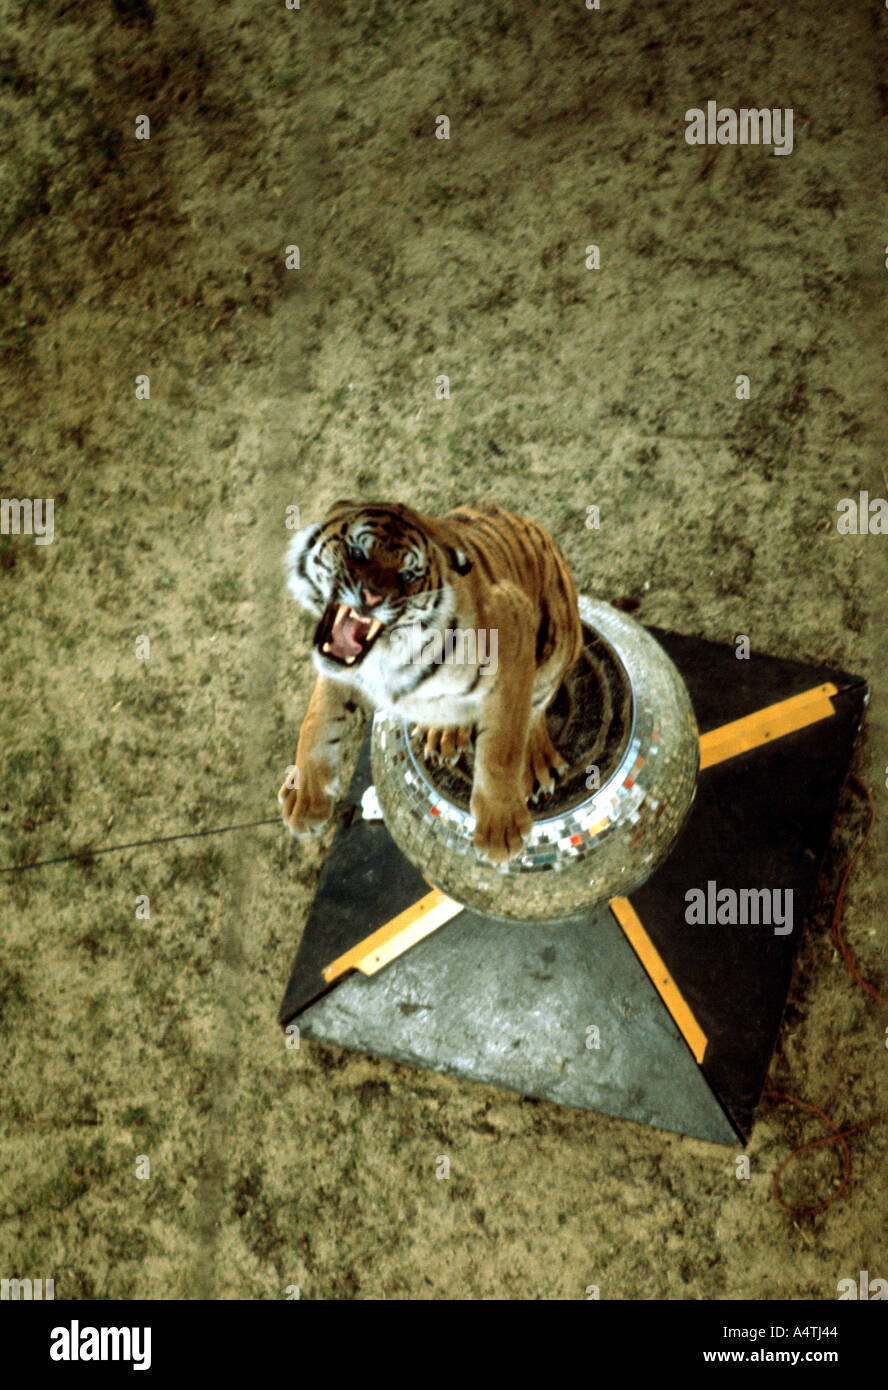 Snarling tiger in circus - Stock Image